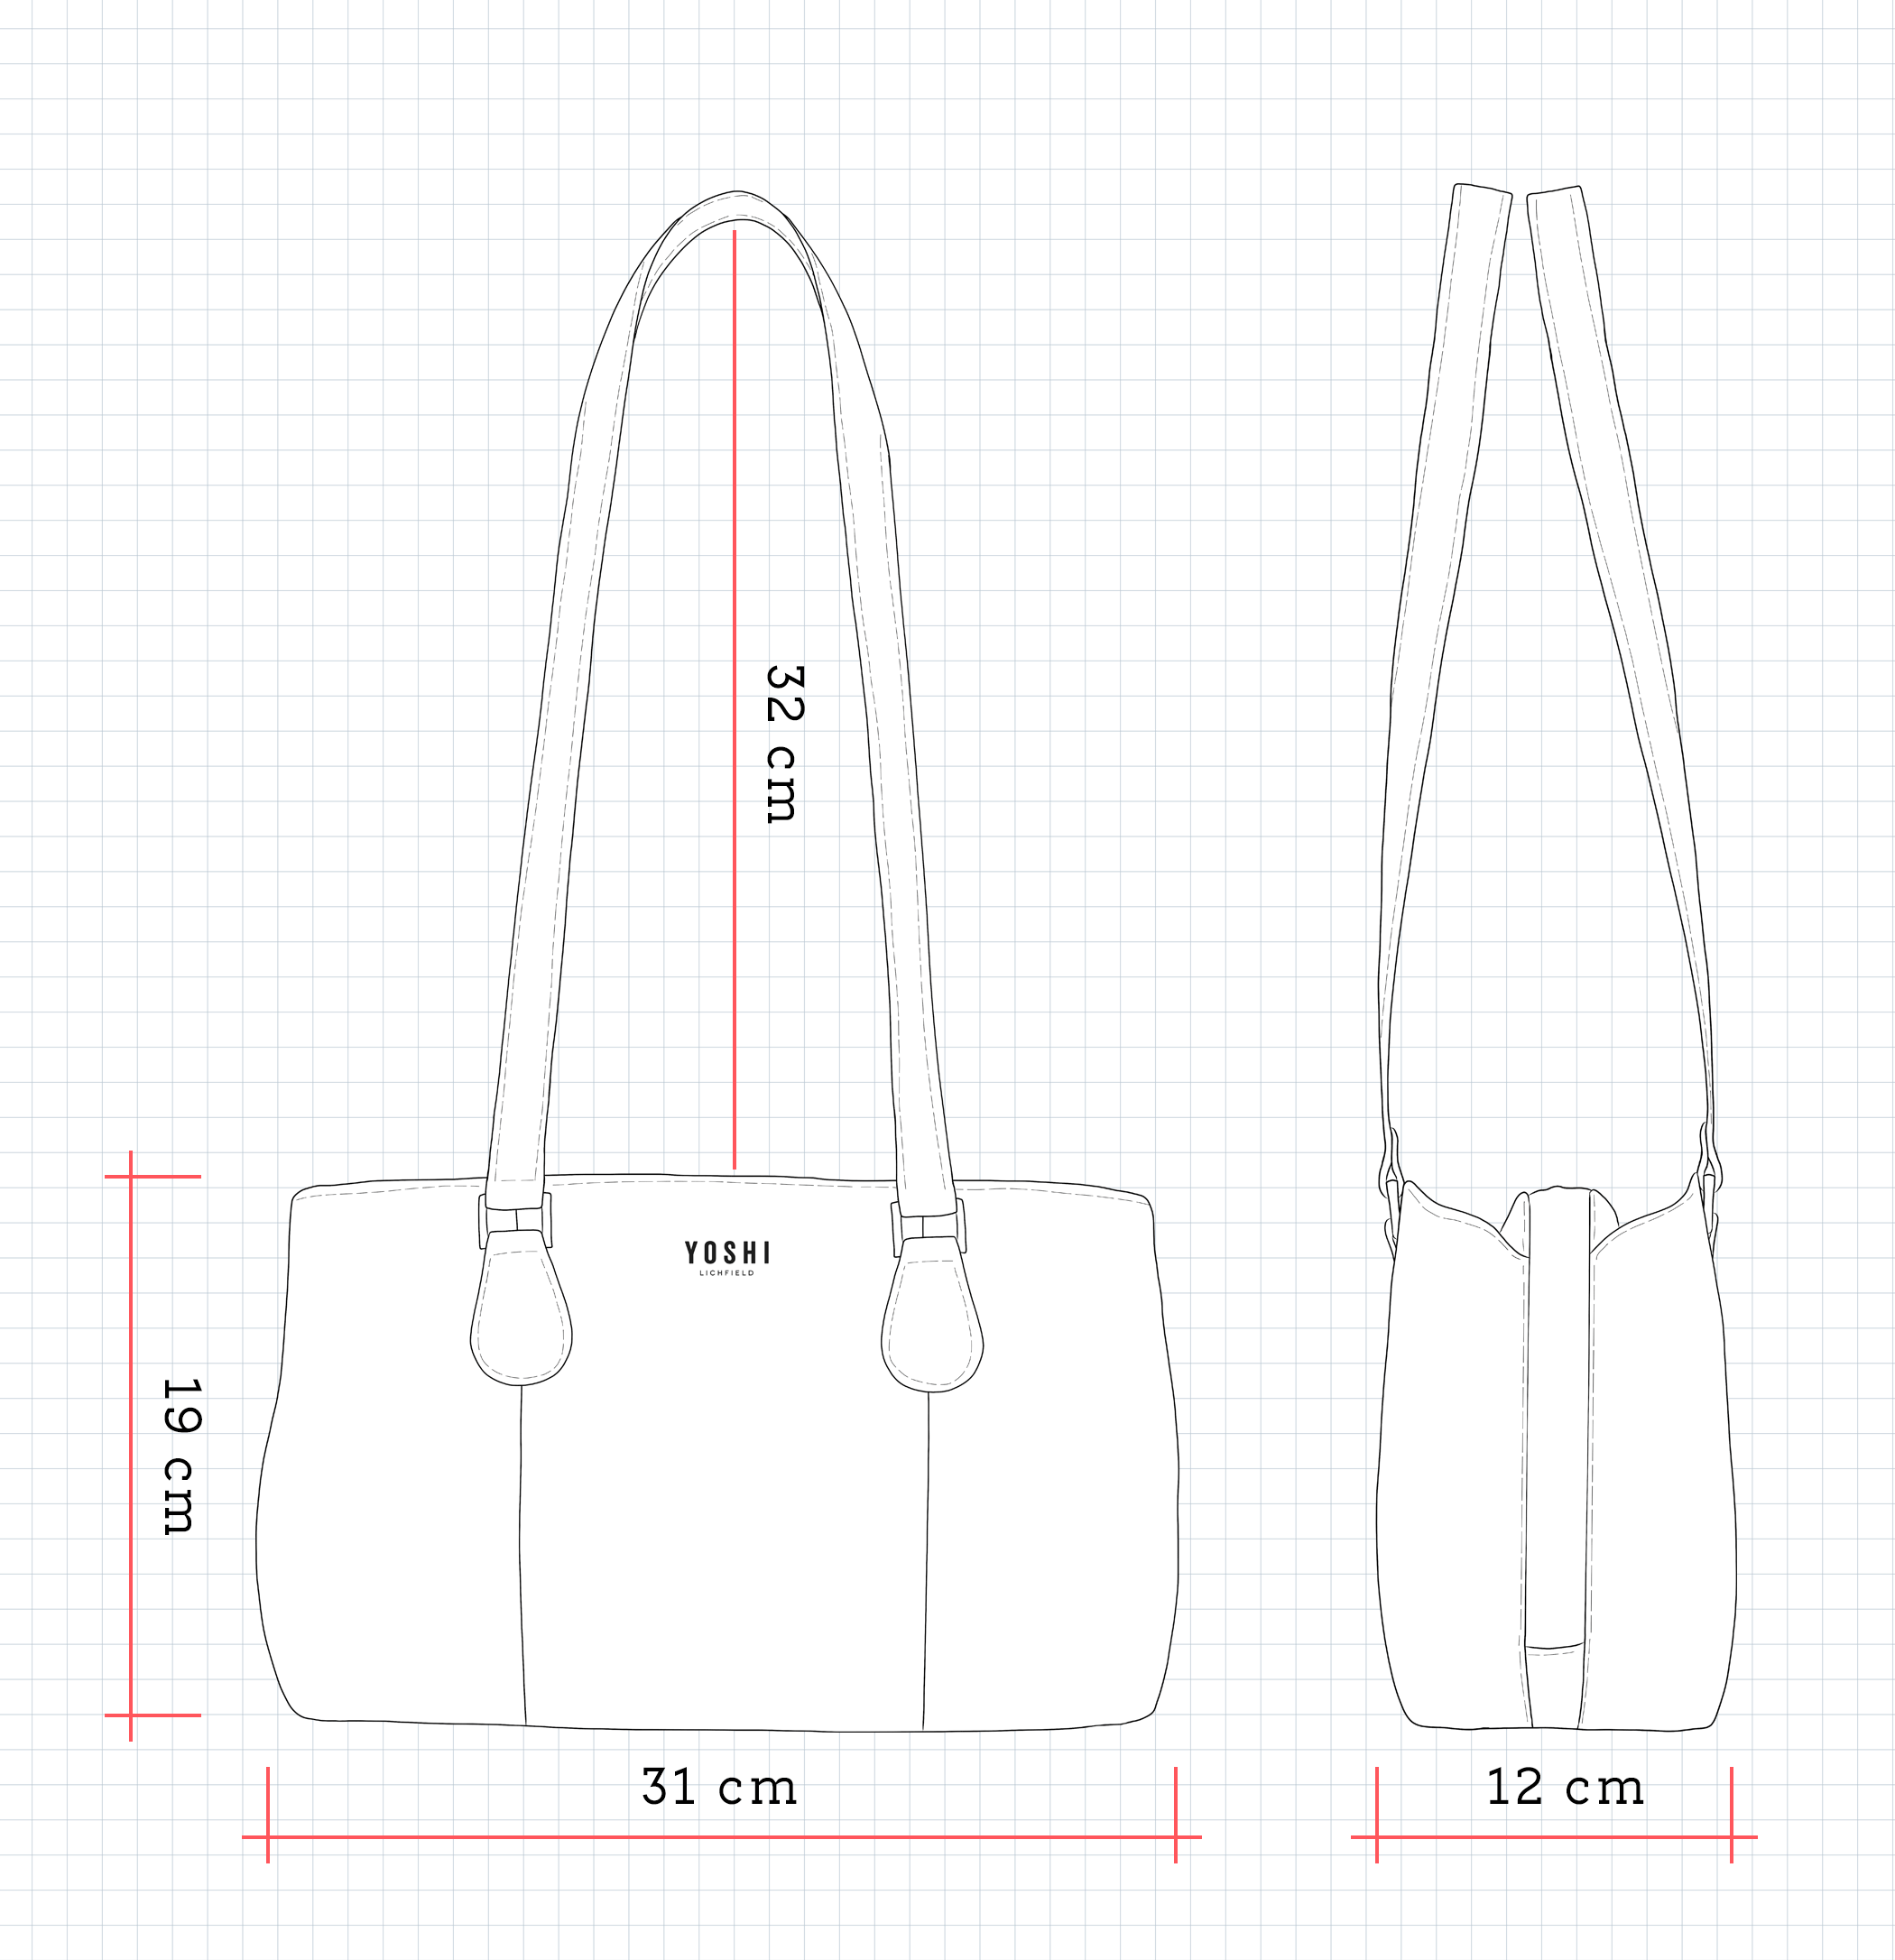 Ealing Leather Shoulder Bag Dimensions